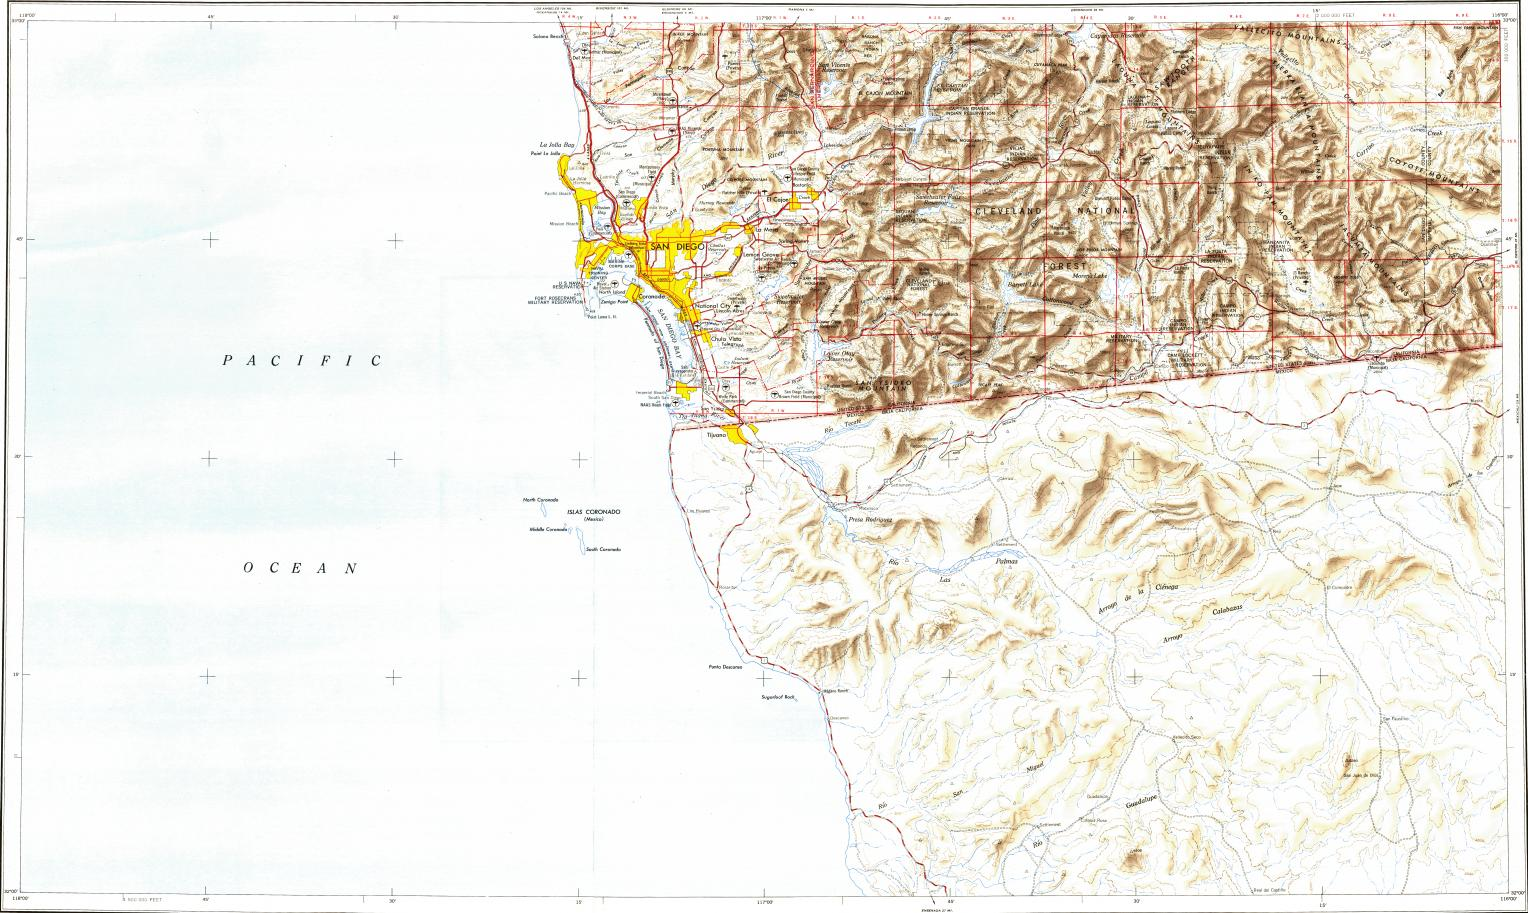 Download topographic map in area of San Diego Tijuana Chula Vista